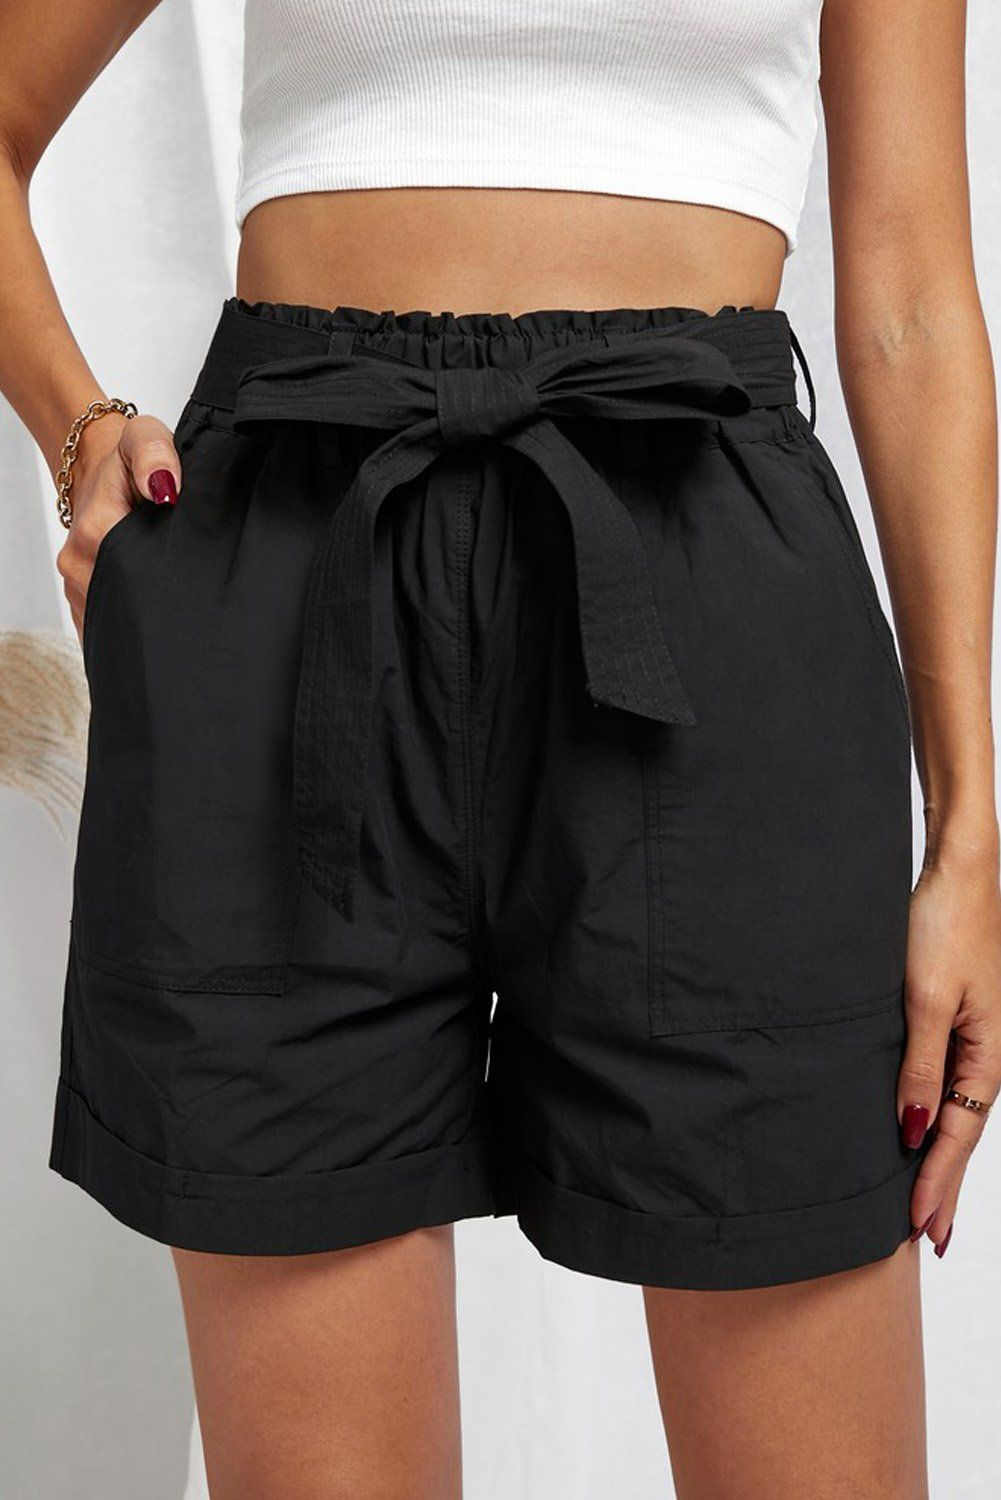 Sewn Cuffed Hemline Pocketed Cargo Shorts with Belt - Black / M / 100%Polyester